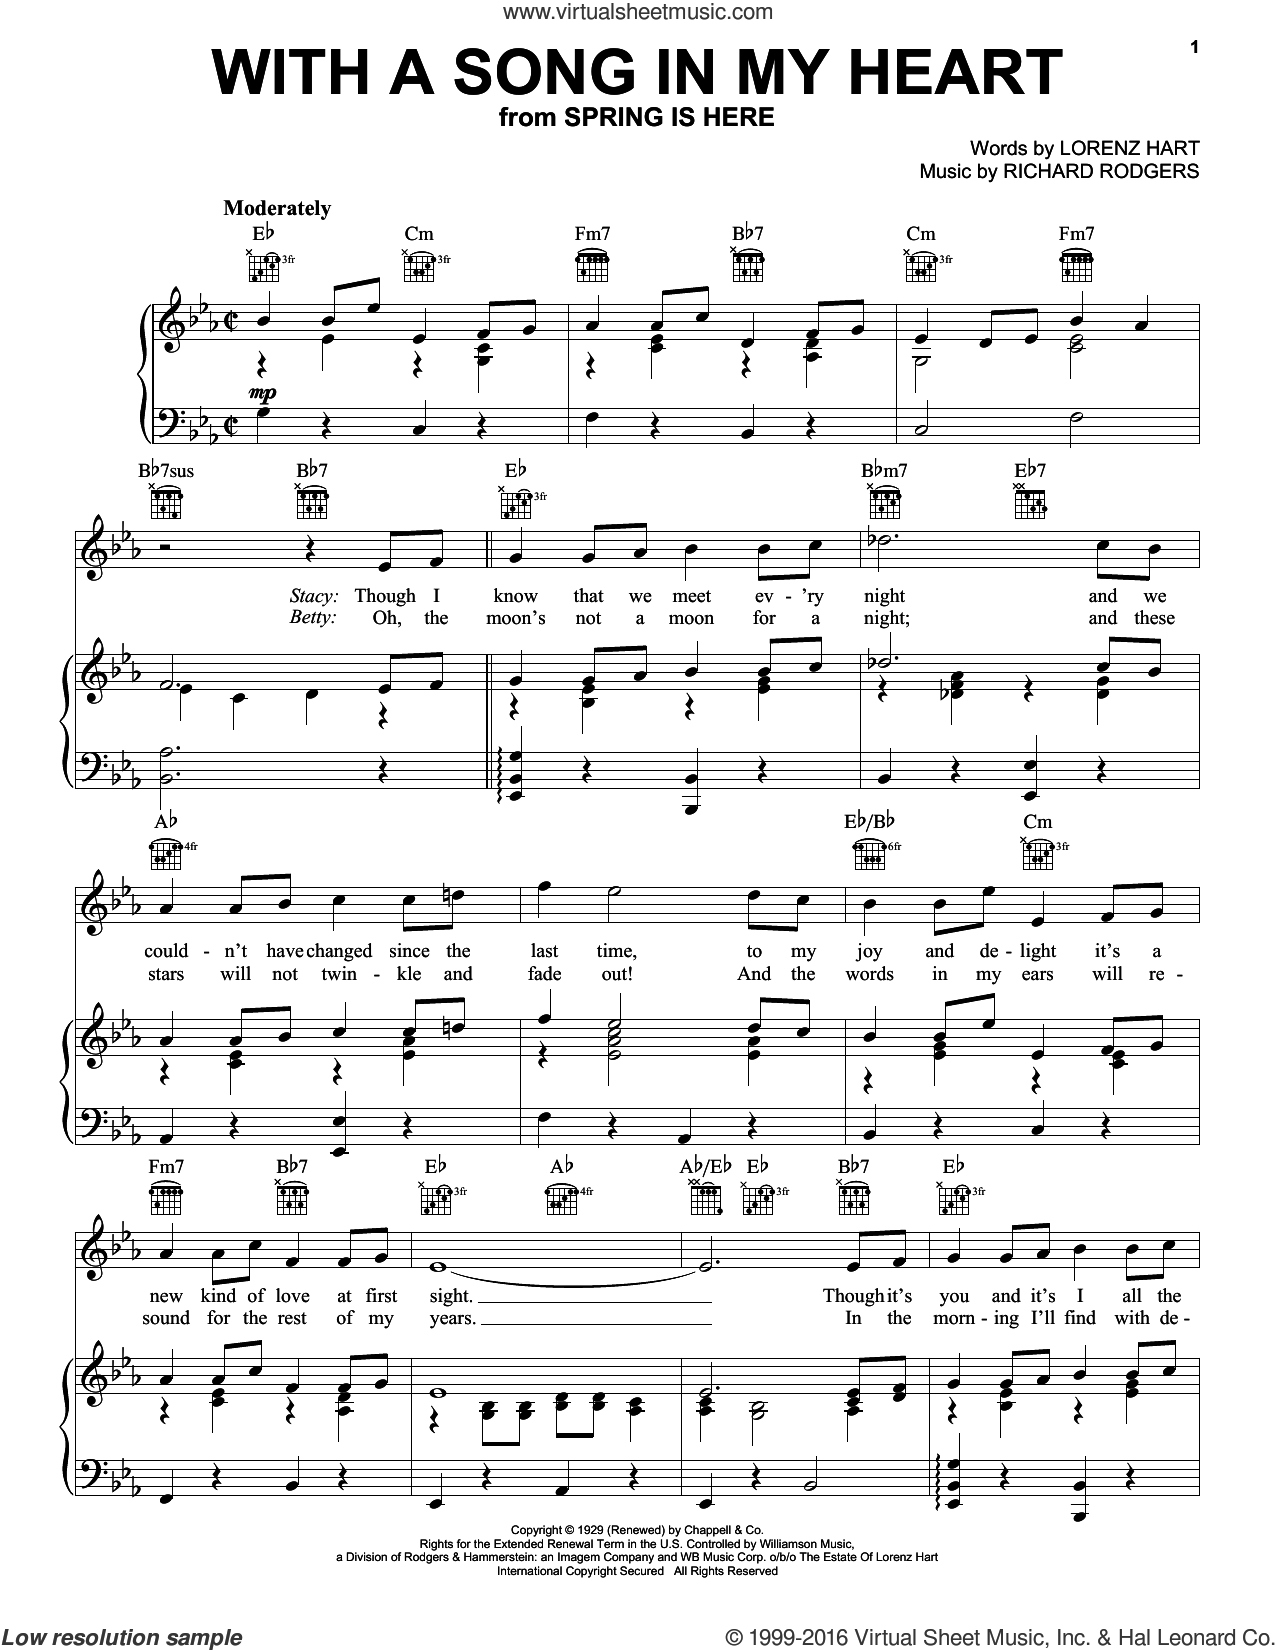 With A Song In My Heart sheet music for voice, piano or guitar by Rodgers & Hart, Lorenz Hart and Richard Rodgers, intermediate. Score Image Preview.